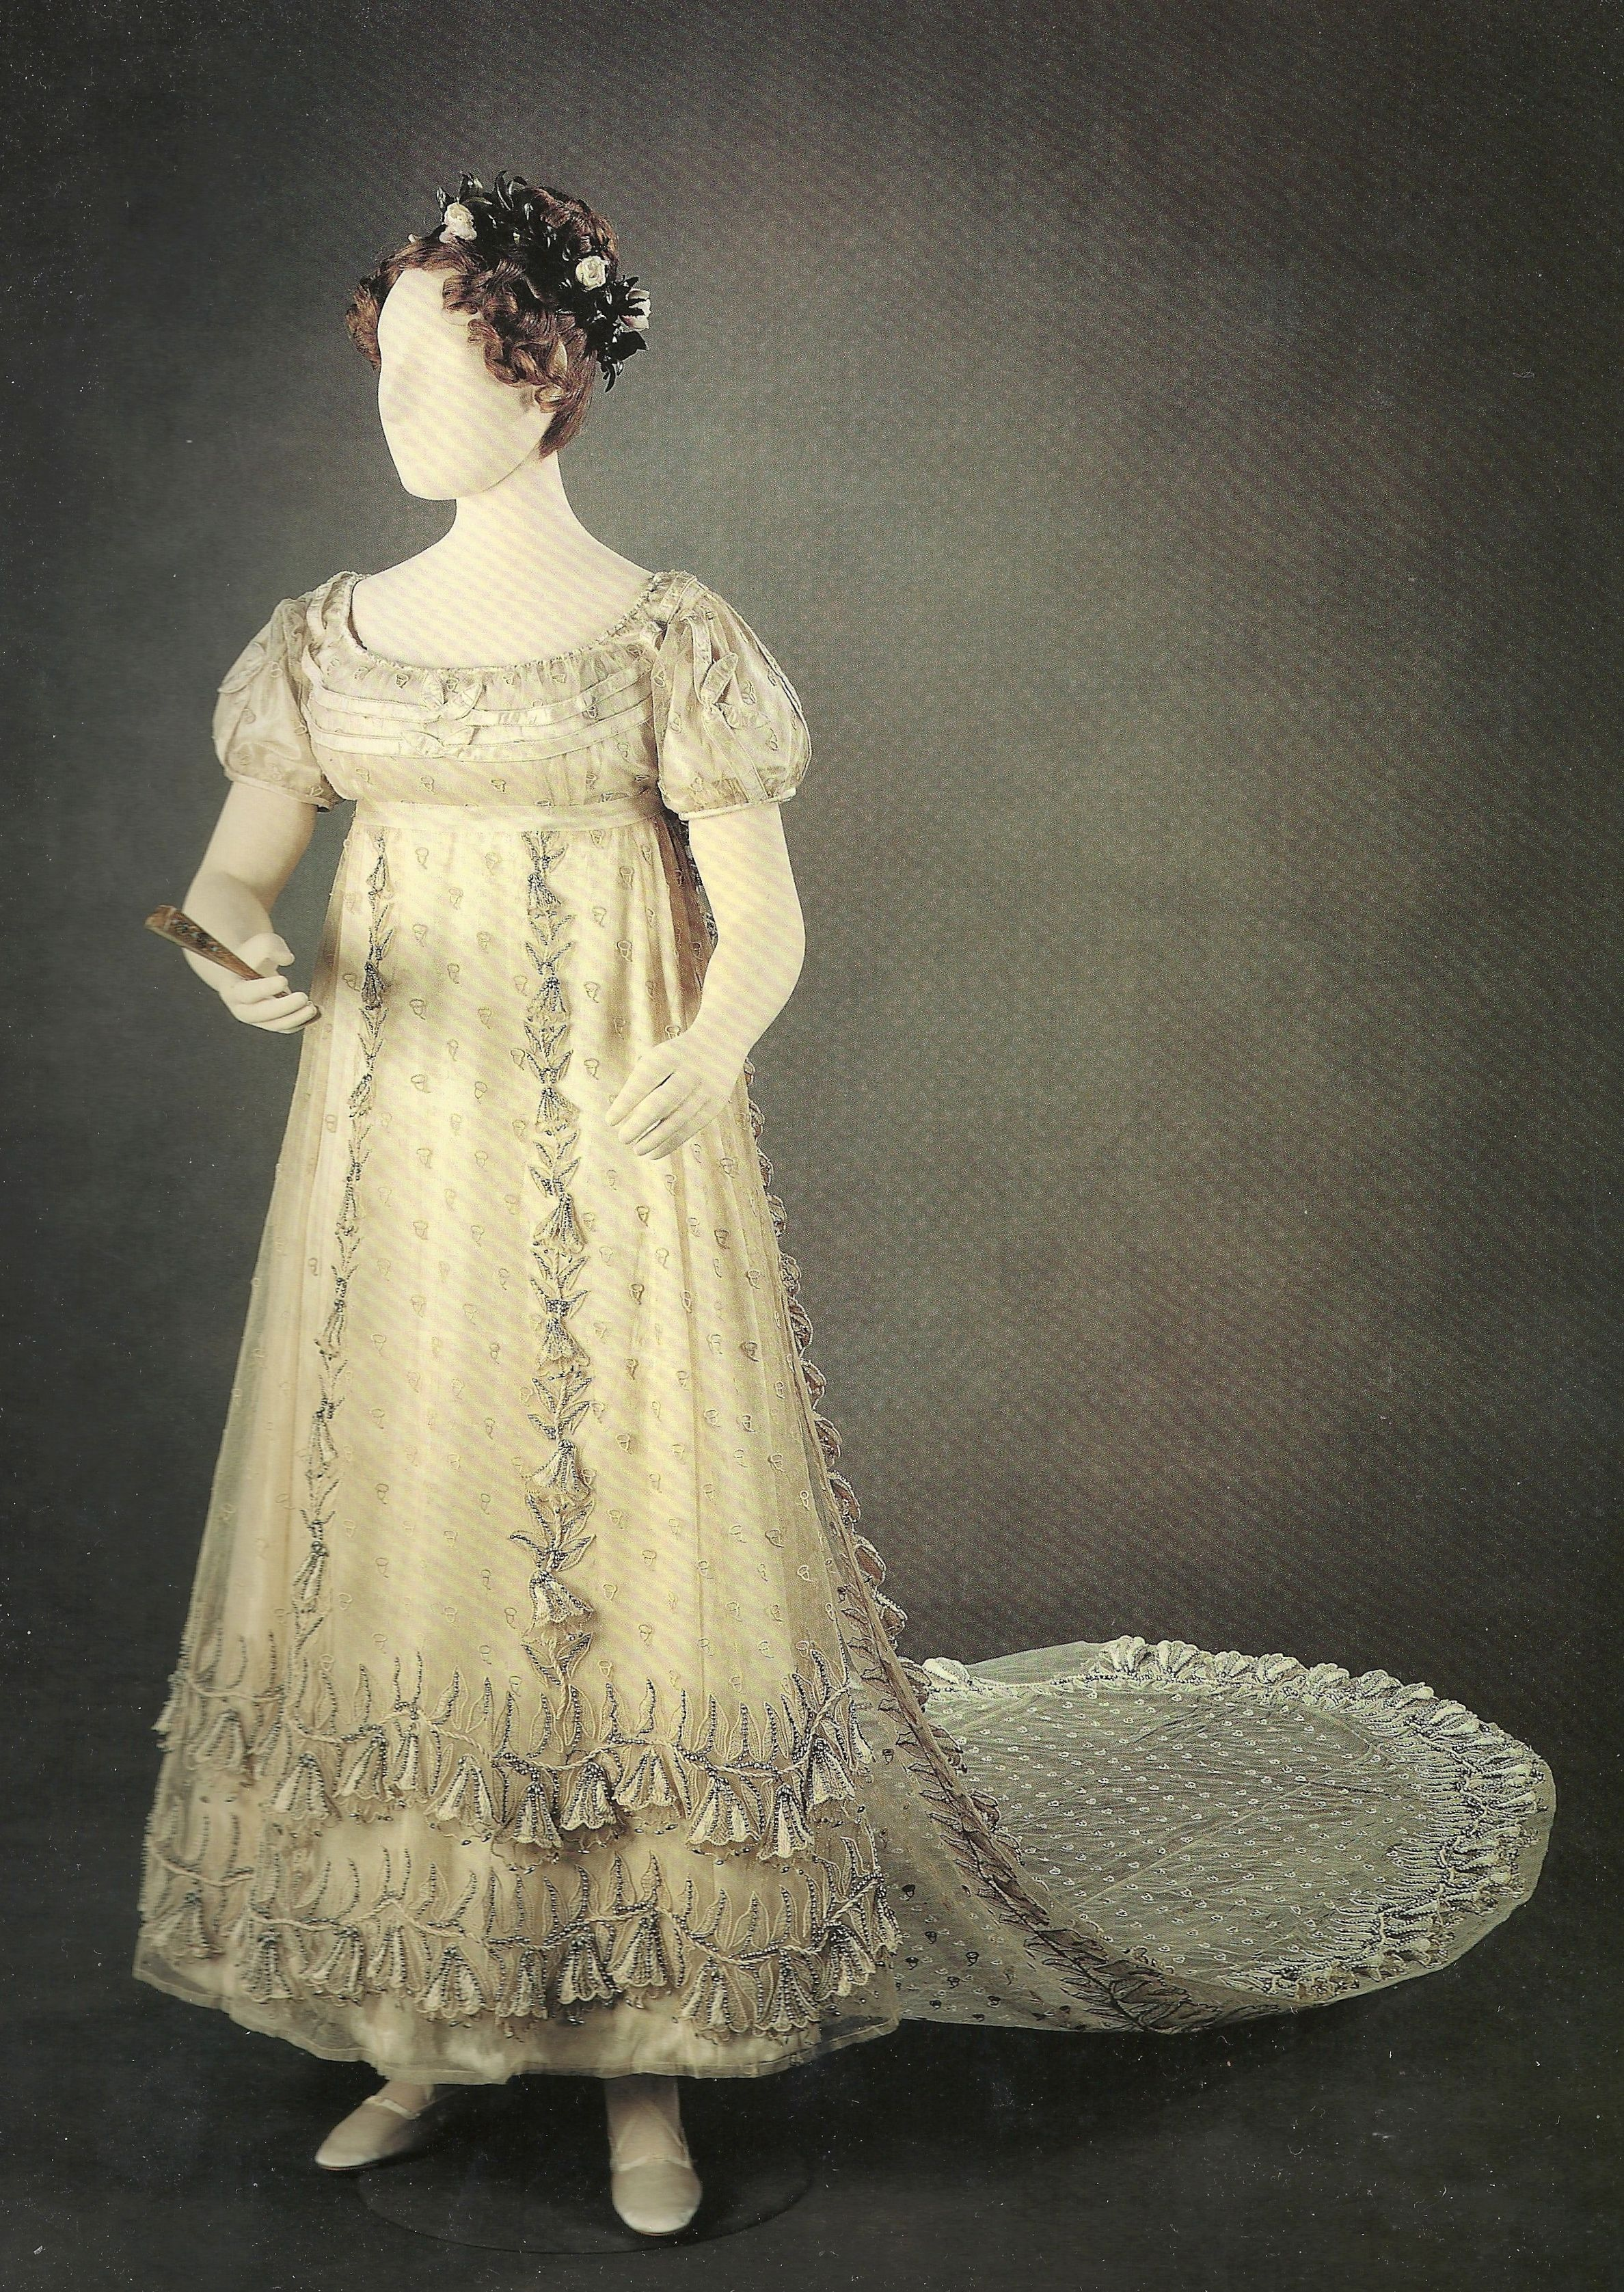 museum of london gown 1801 | Her silver and white evening gown, on loan from the Museum of London;